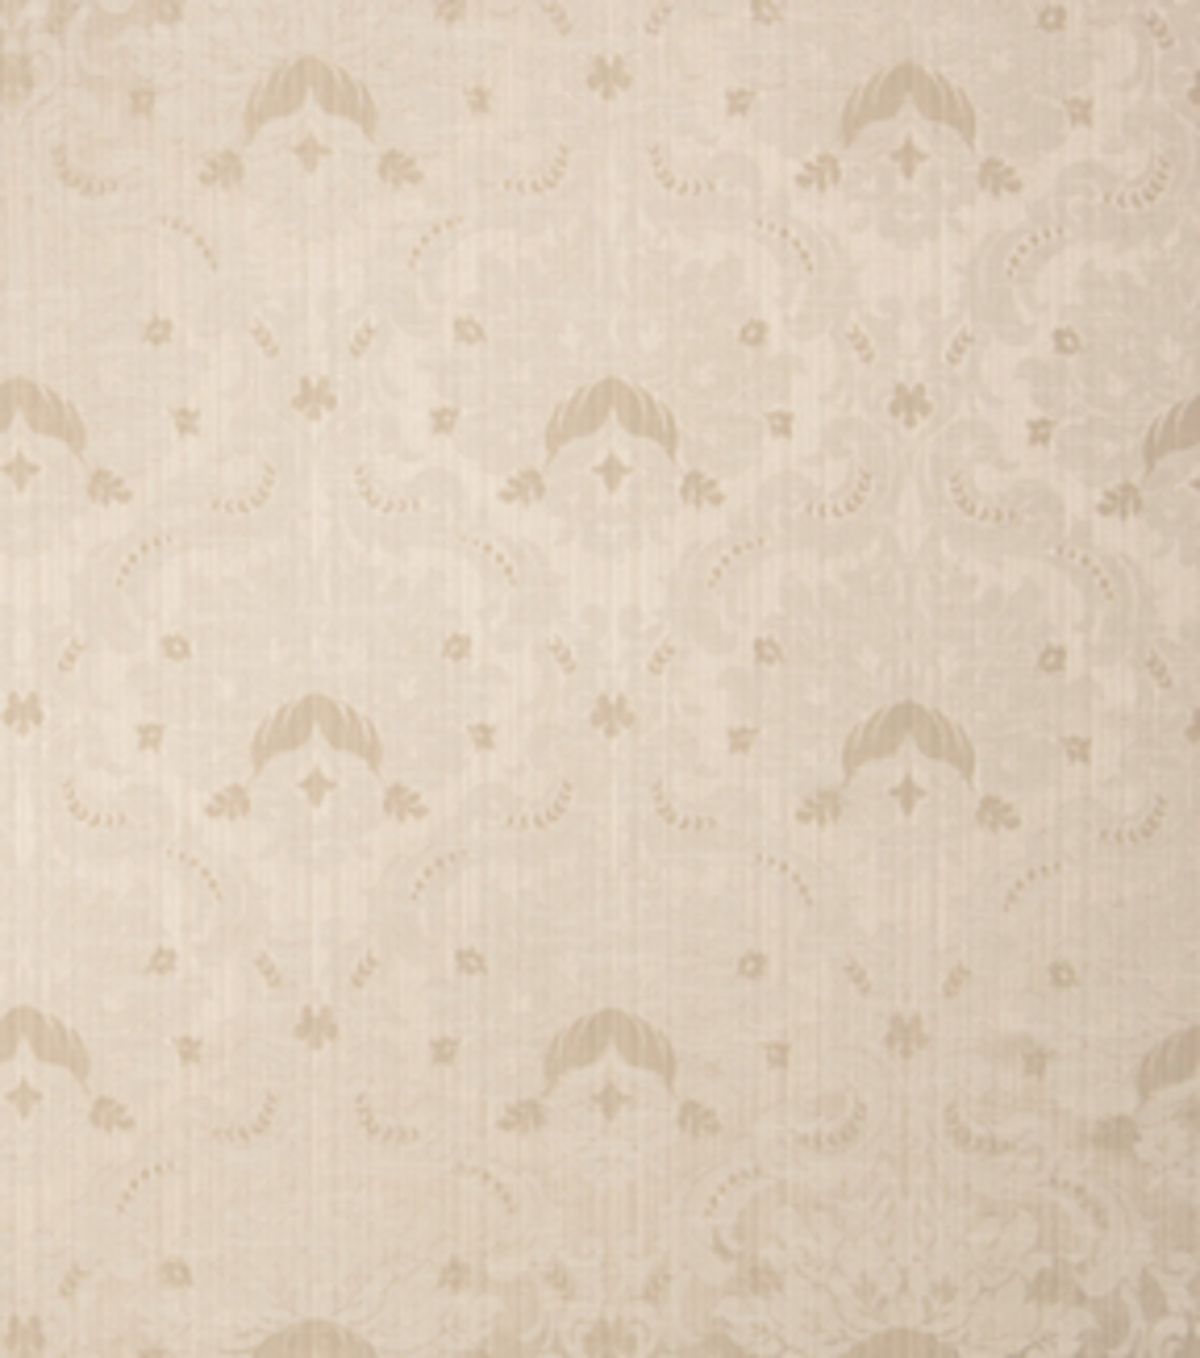 Home Decor 8\u0022x8\u0022 Fabric Swatch-Eaton Square Hobby /  Wheat